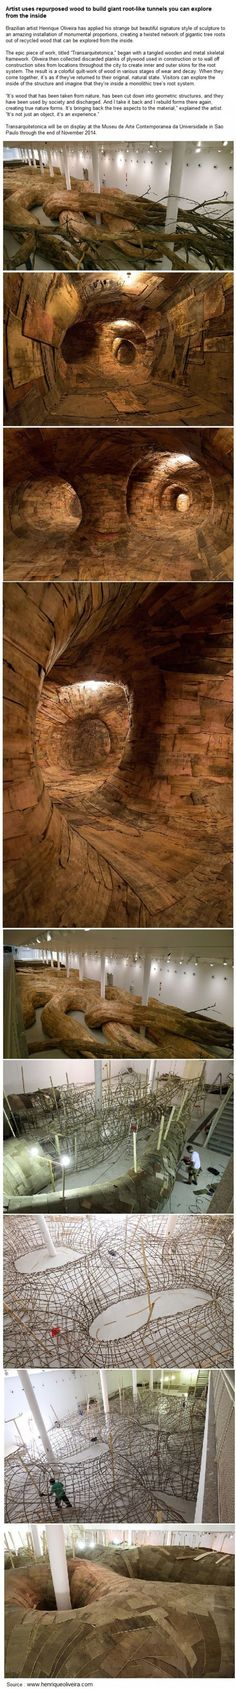 Artist uses repurposed wood to build giant root-like tunnels you can explore from the inside Just Amazing, Amazing Art, Awesome, Sculpture Art, Sculptures, Cool Wood Projects, Small House Decorating, Repurposed Wood, Wood Cutting